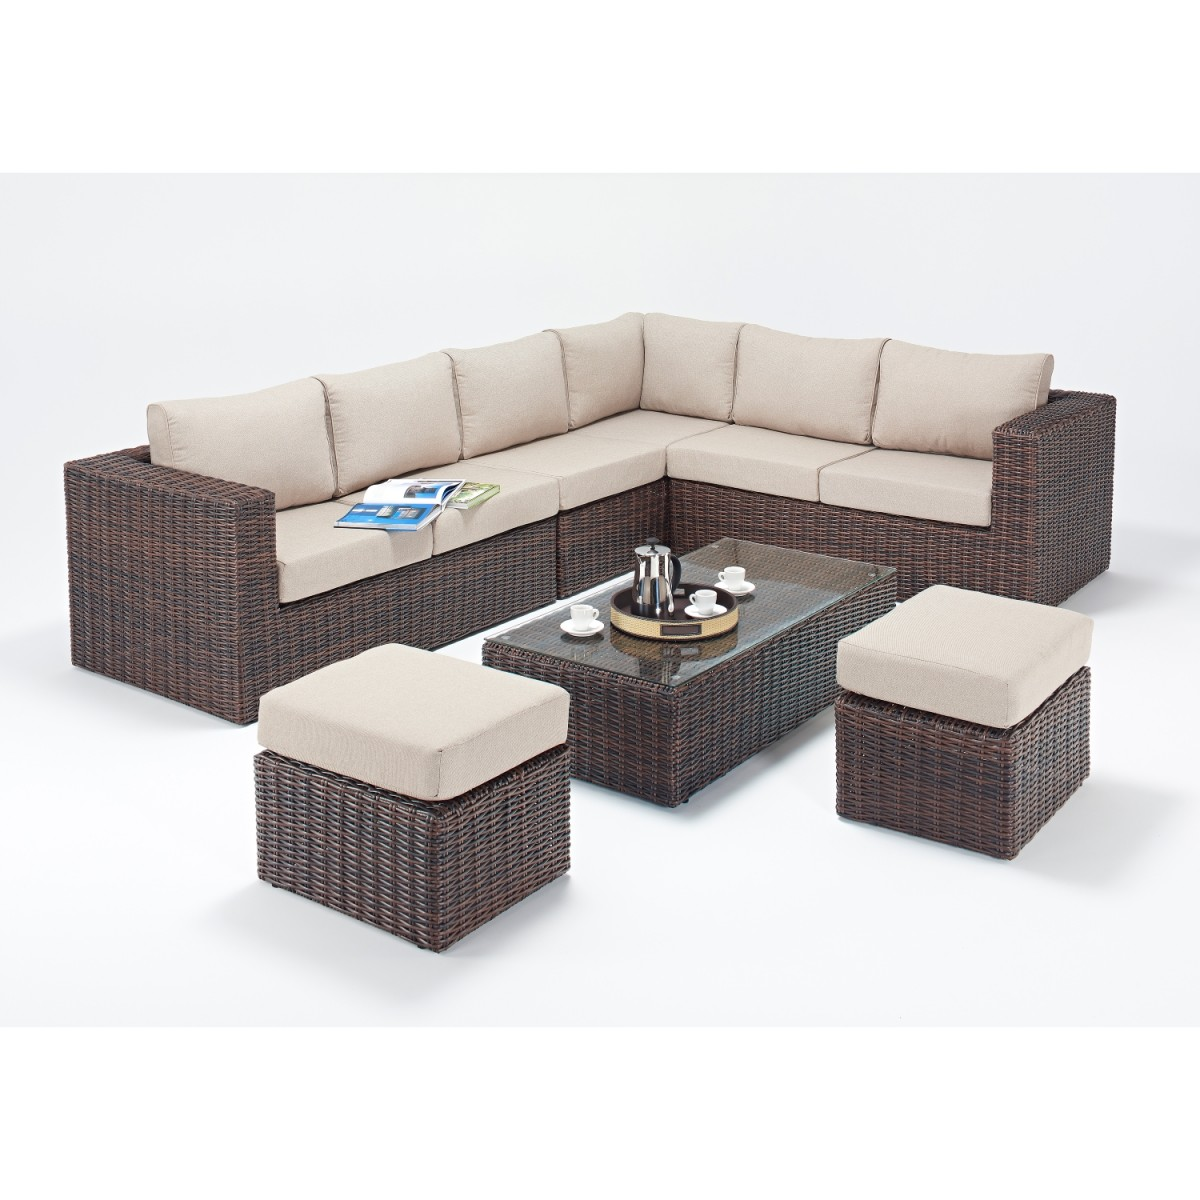 Rattan Corner Sofa Reviews Rattan Sets Windsor Large Corner Sofa Set Wgf 2710 Right